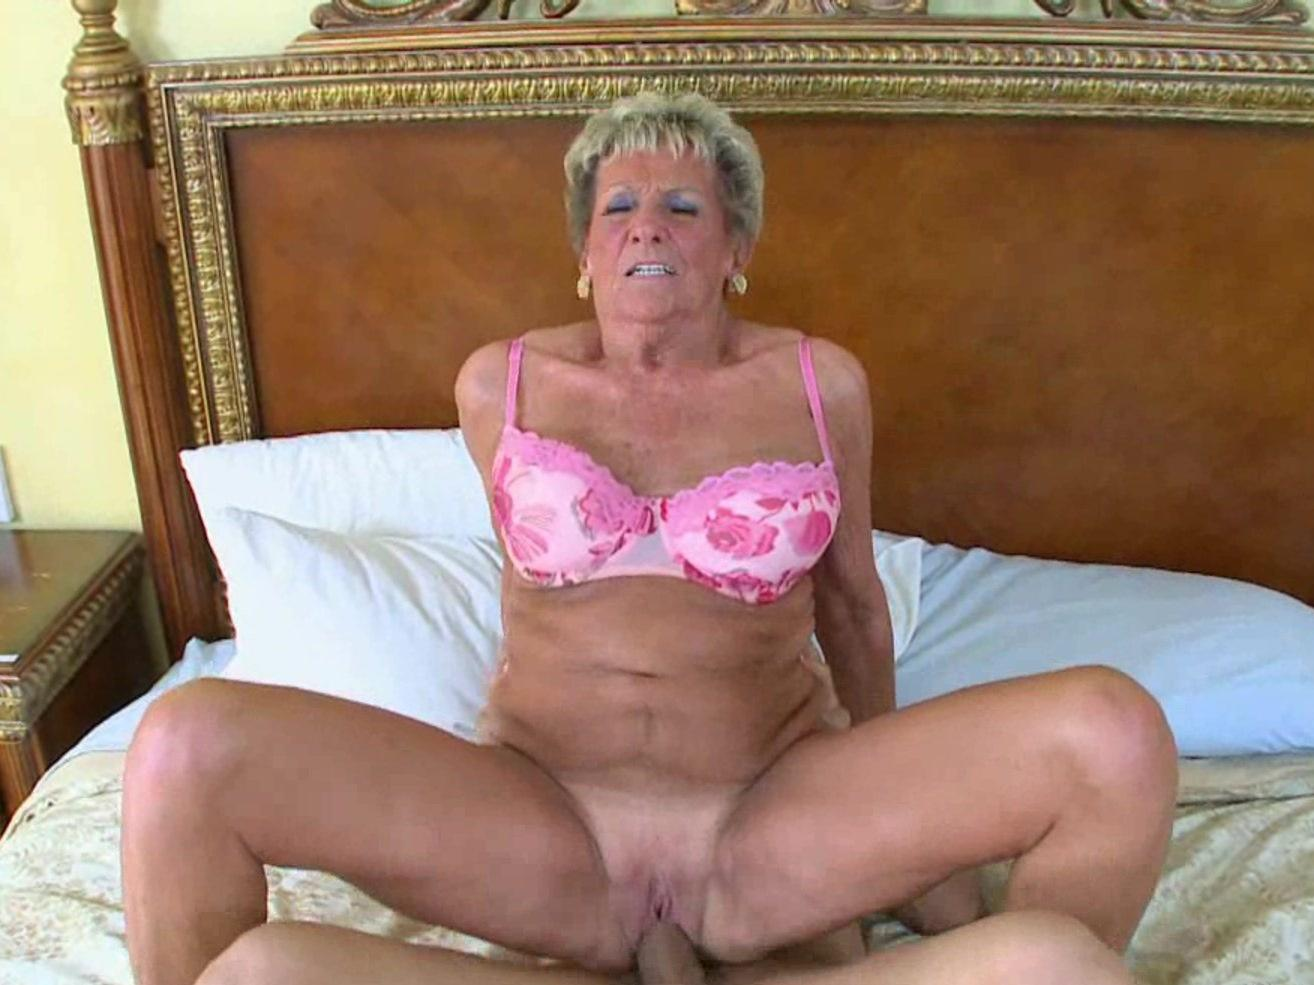 Fucking old nude women Old Nude Women Fuck Full Hd Gallery Free Comments 3